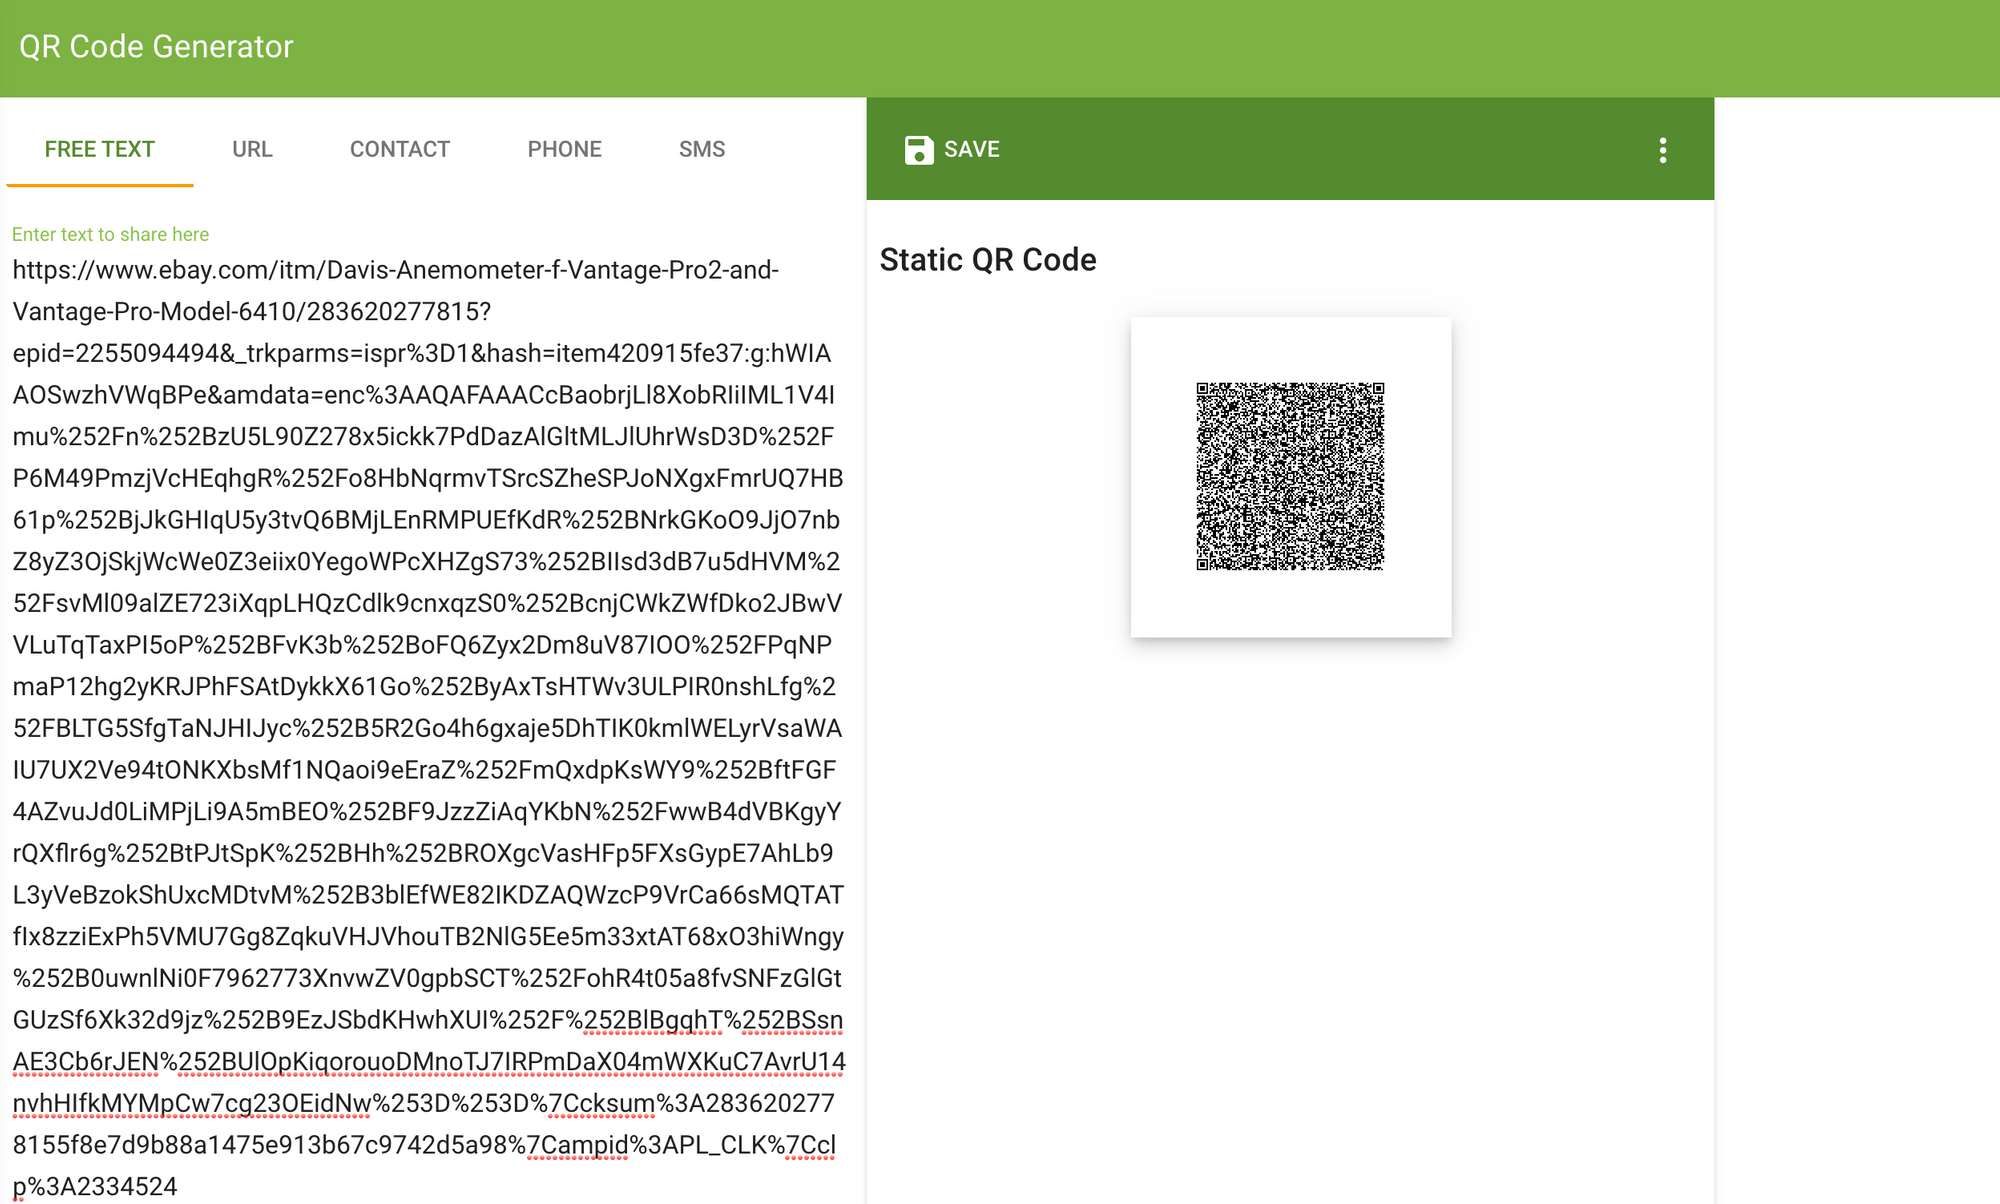 URL and QR code before shortening.